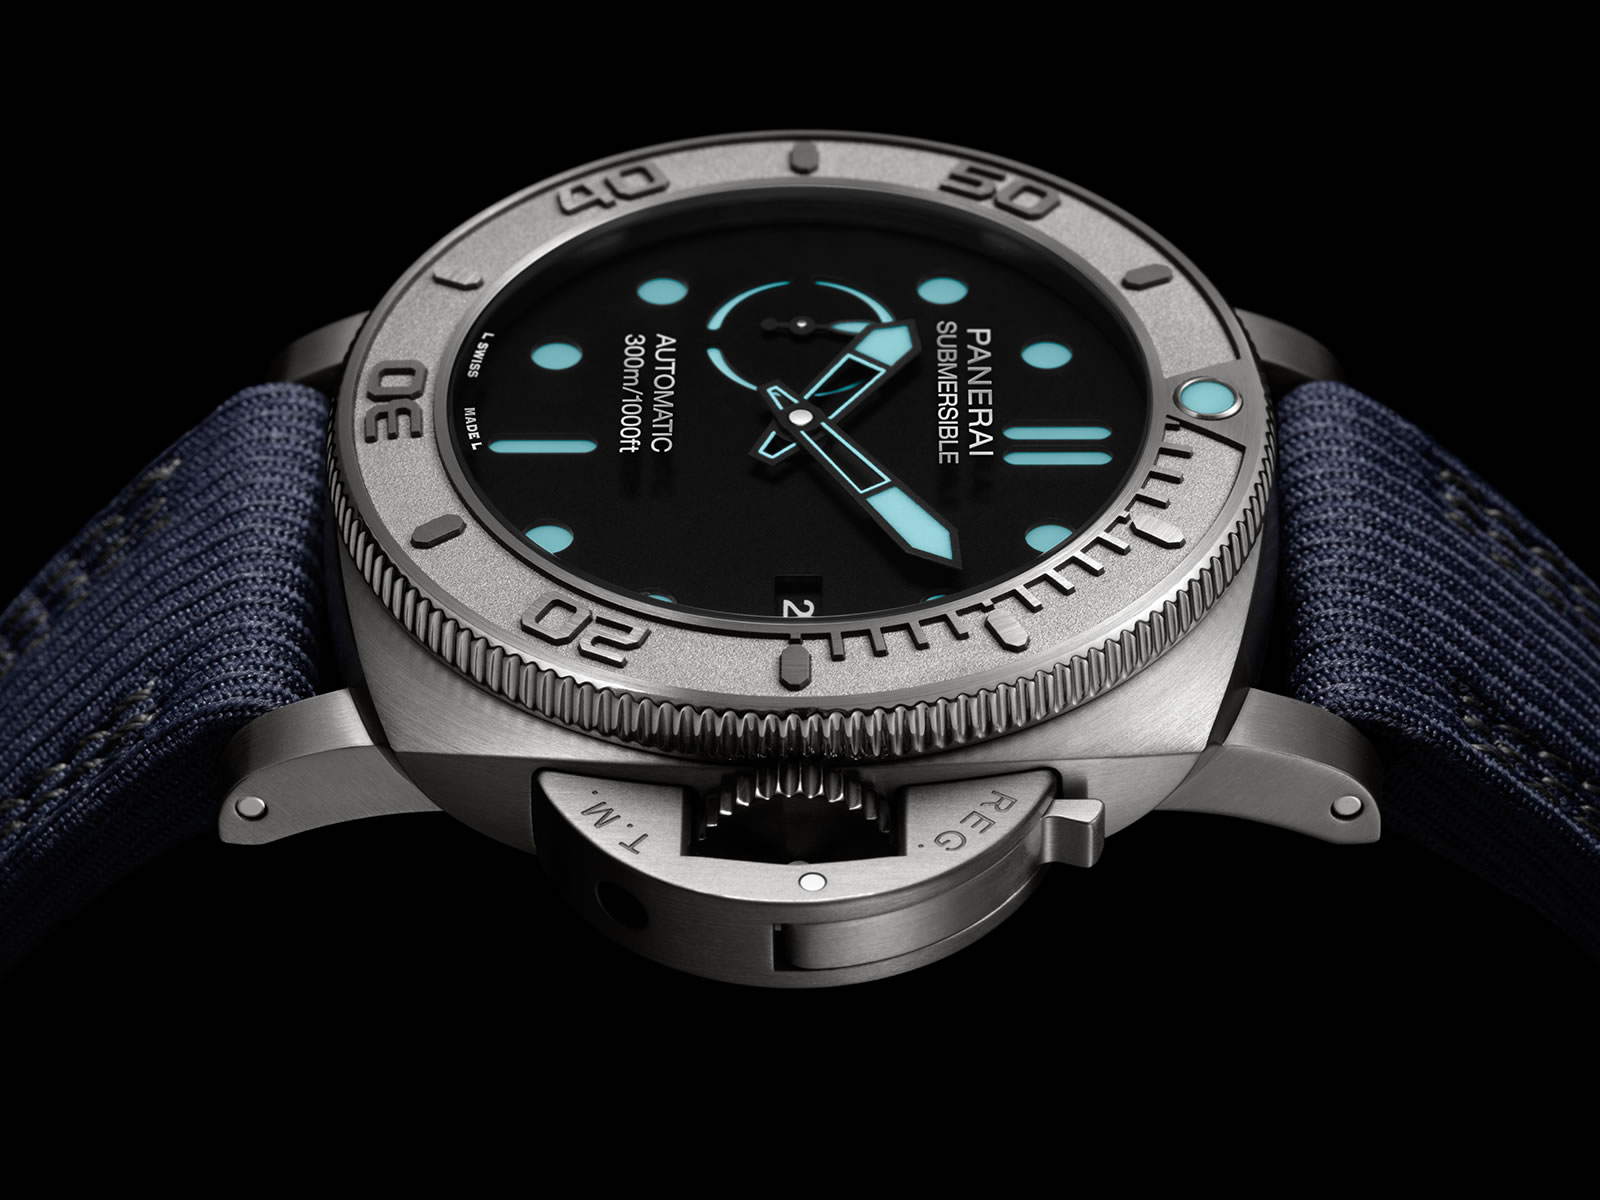 pam00985-officine-panerai-submersible-mike-horn-edition-47mm-3-.jpg